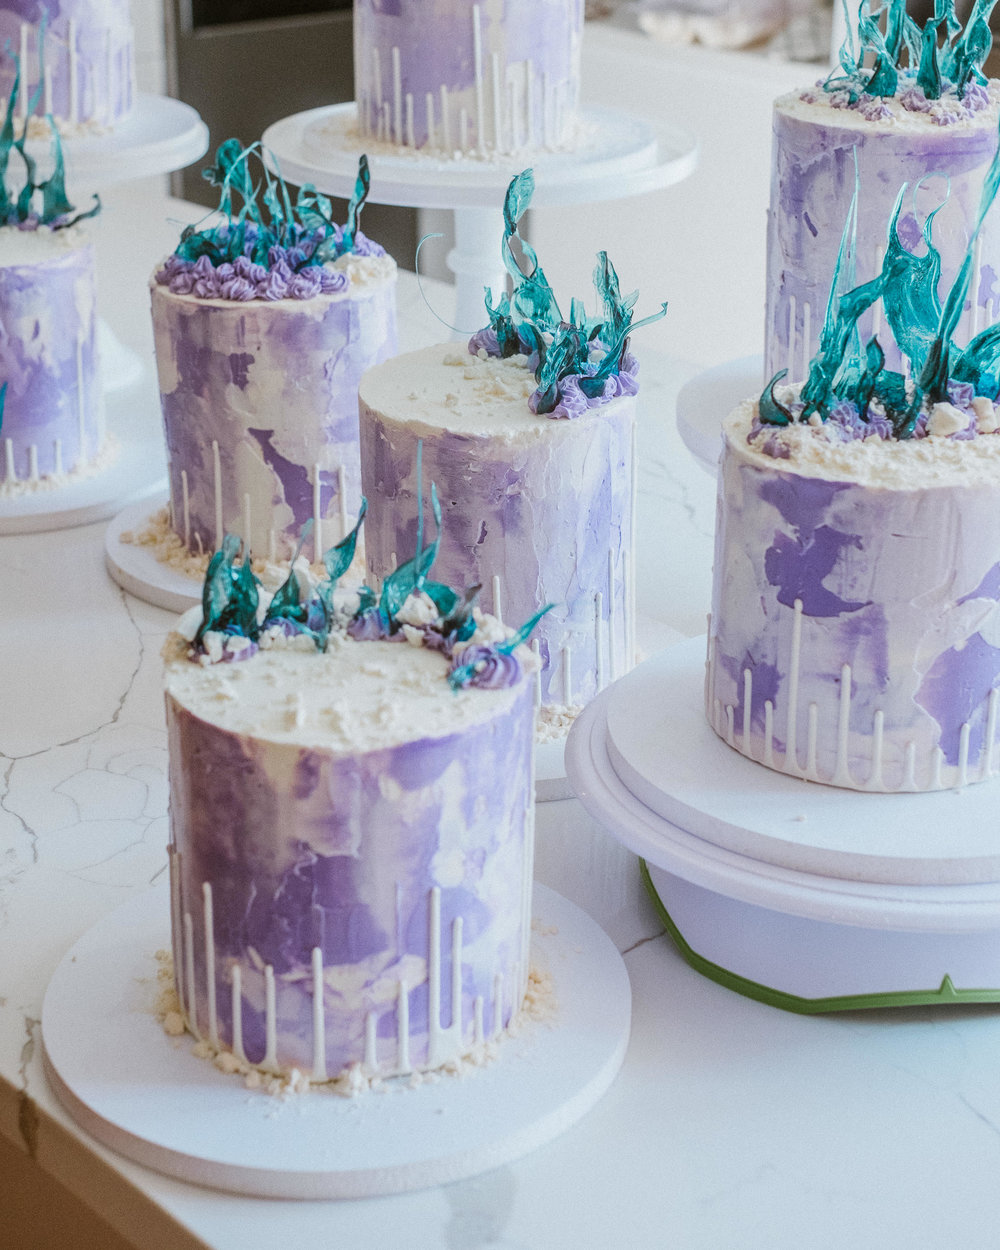 cakesbycliff_nyc_workshop06.jpg